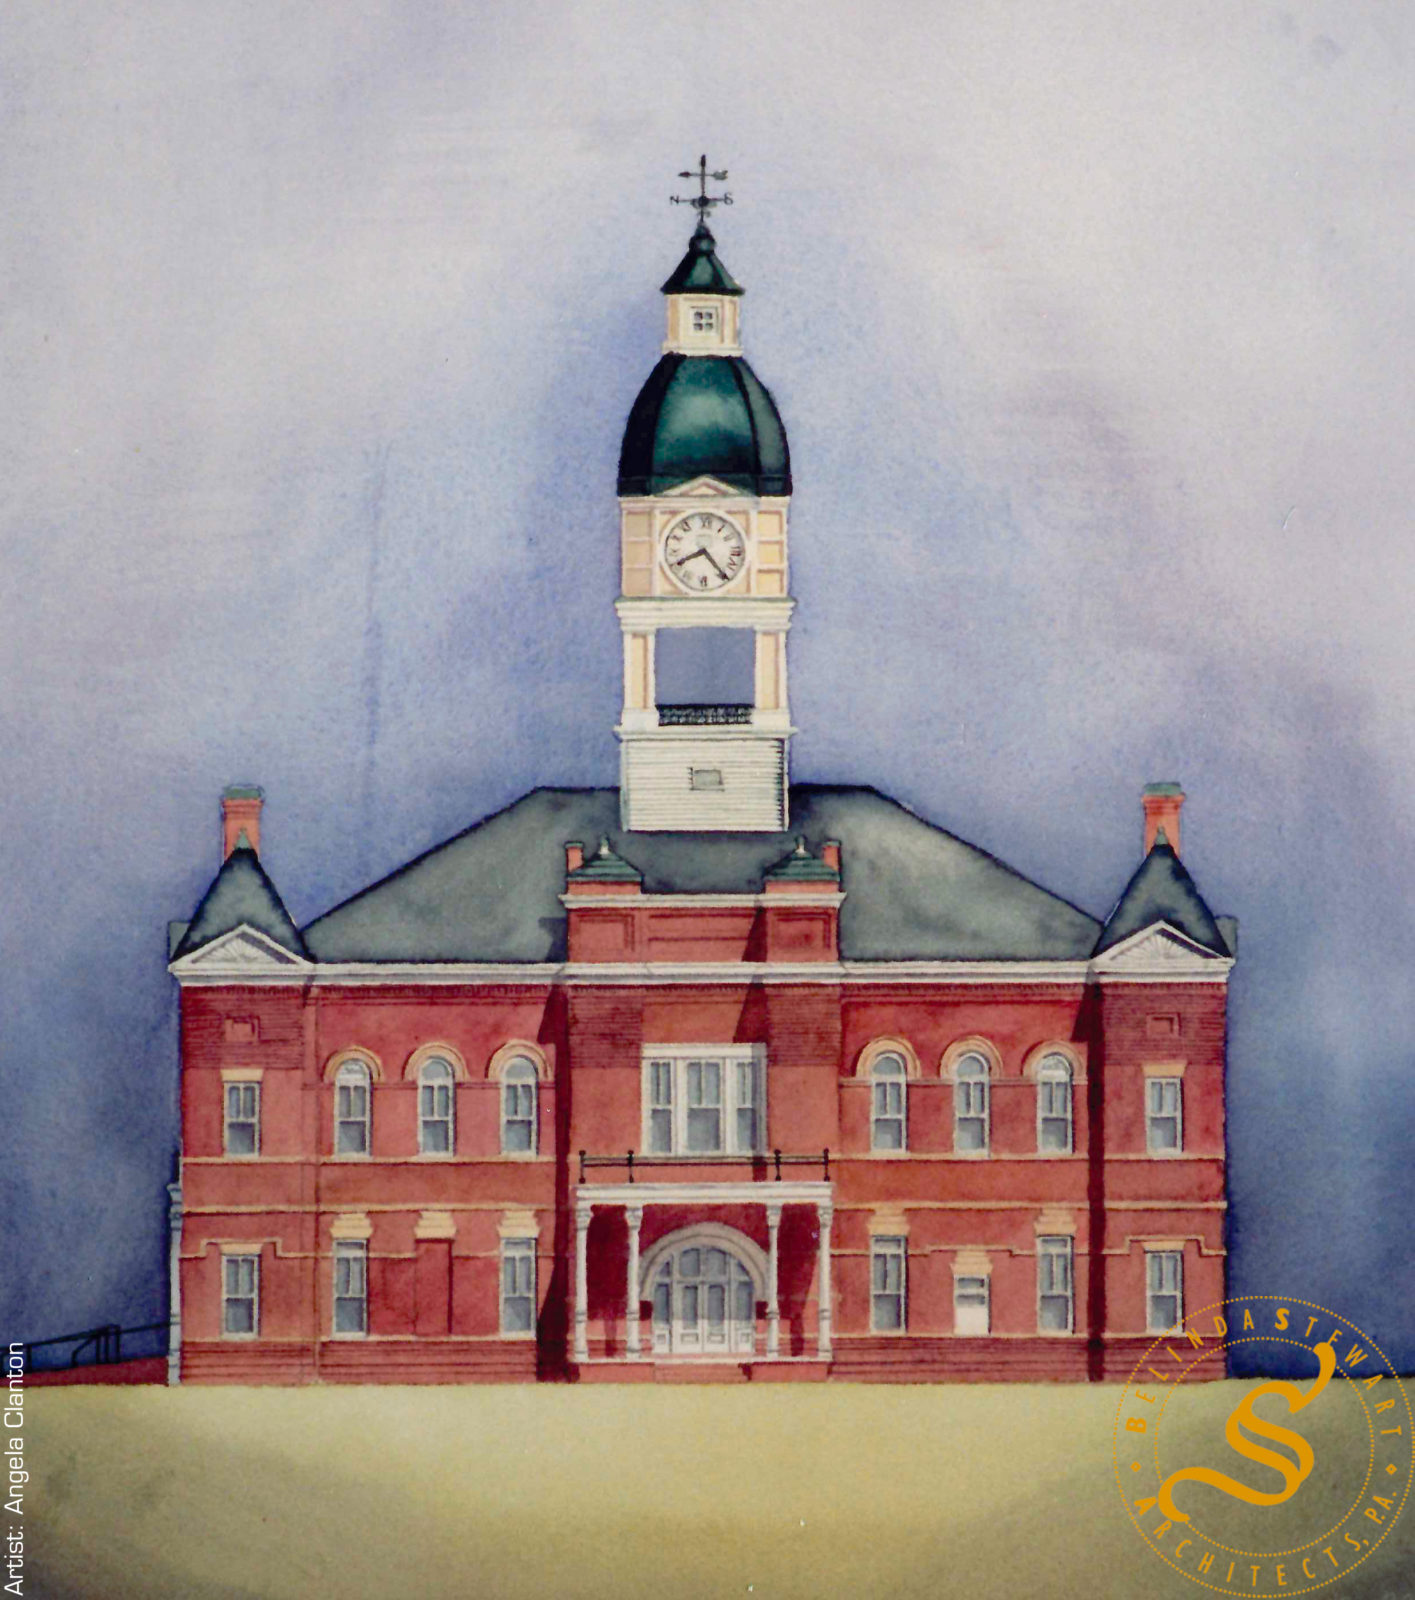 Holmes County Courthouse Restoration